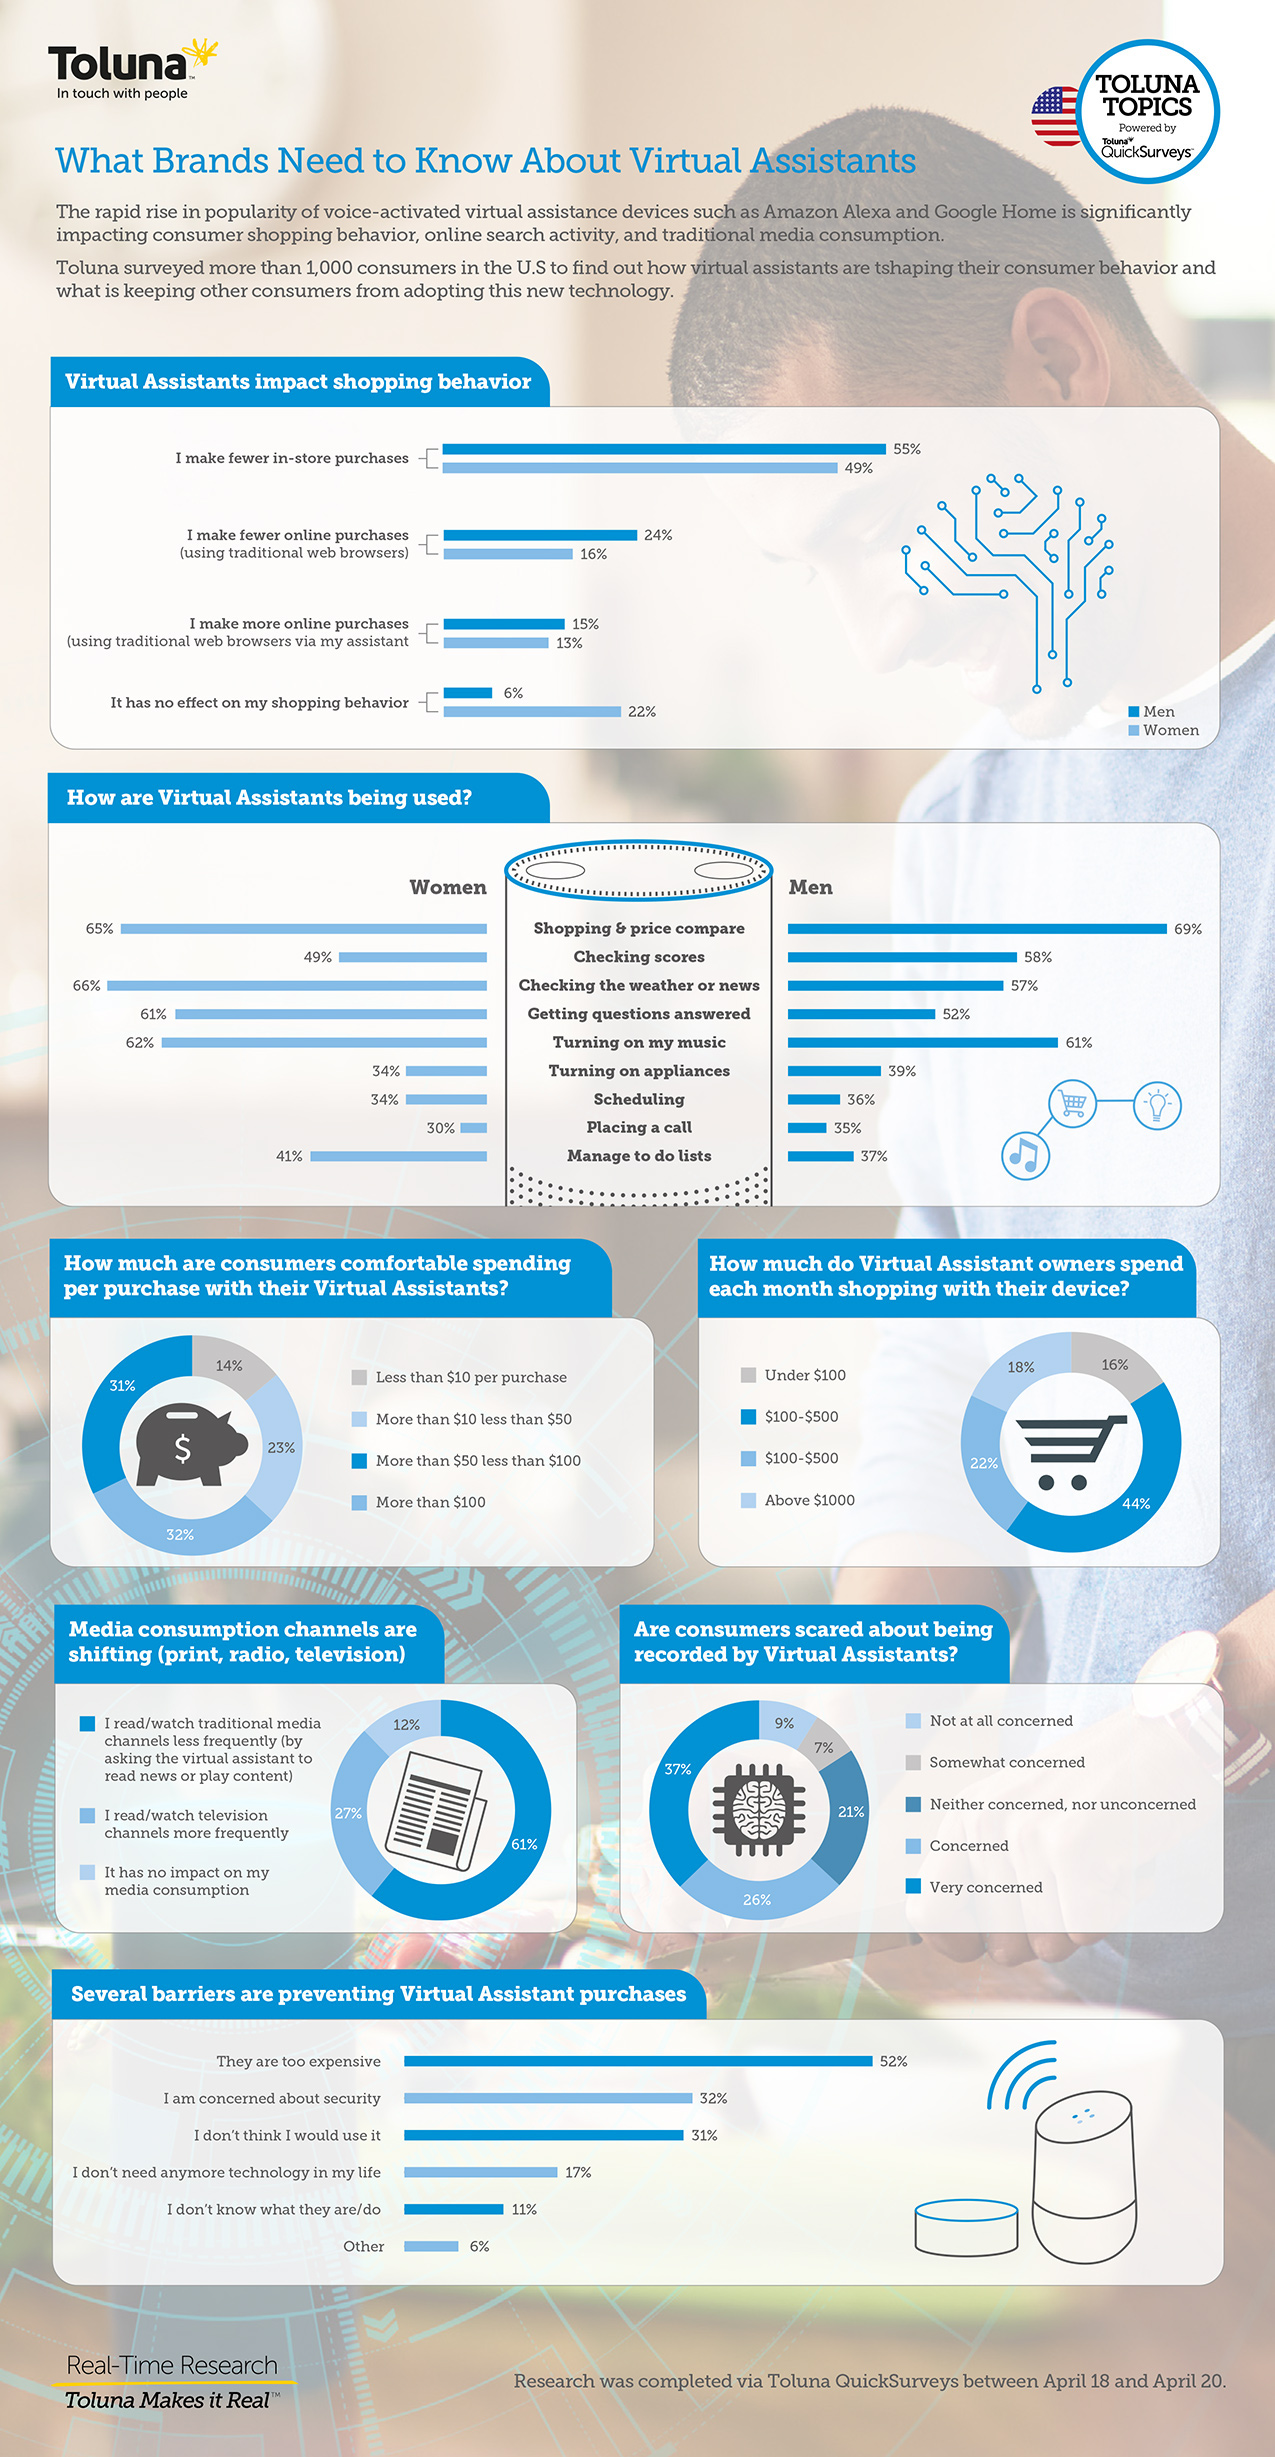 Alexa, How Are Voice-Activated Virtual Assistants Changing Shopping, Search, and Media Behavior? [Infographic]